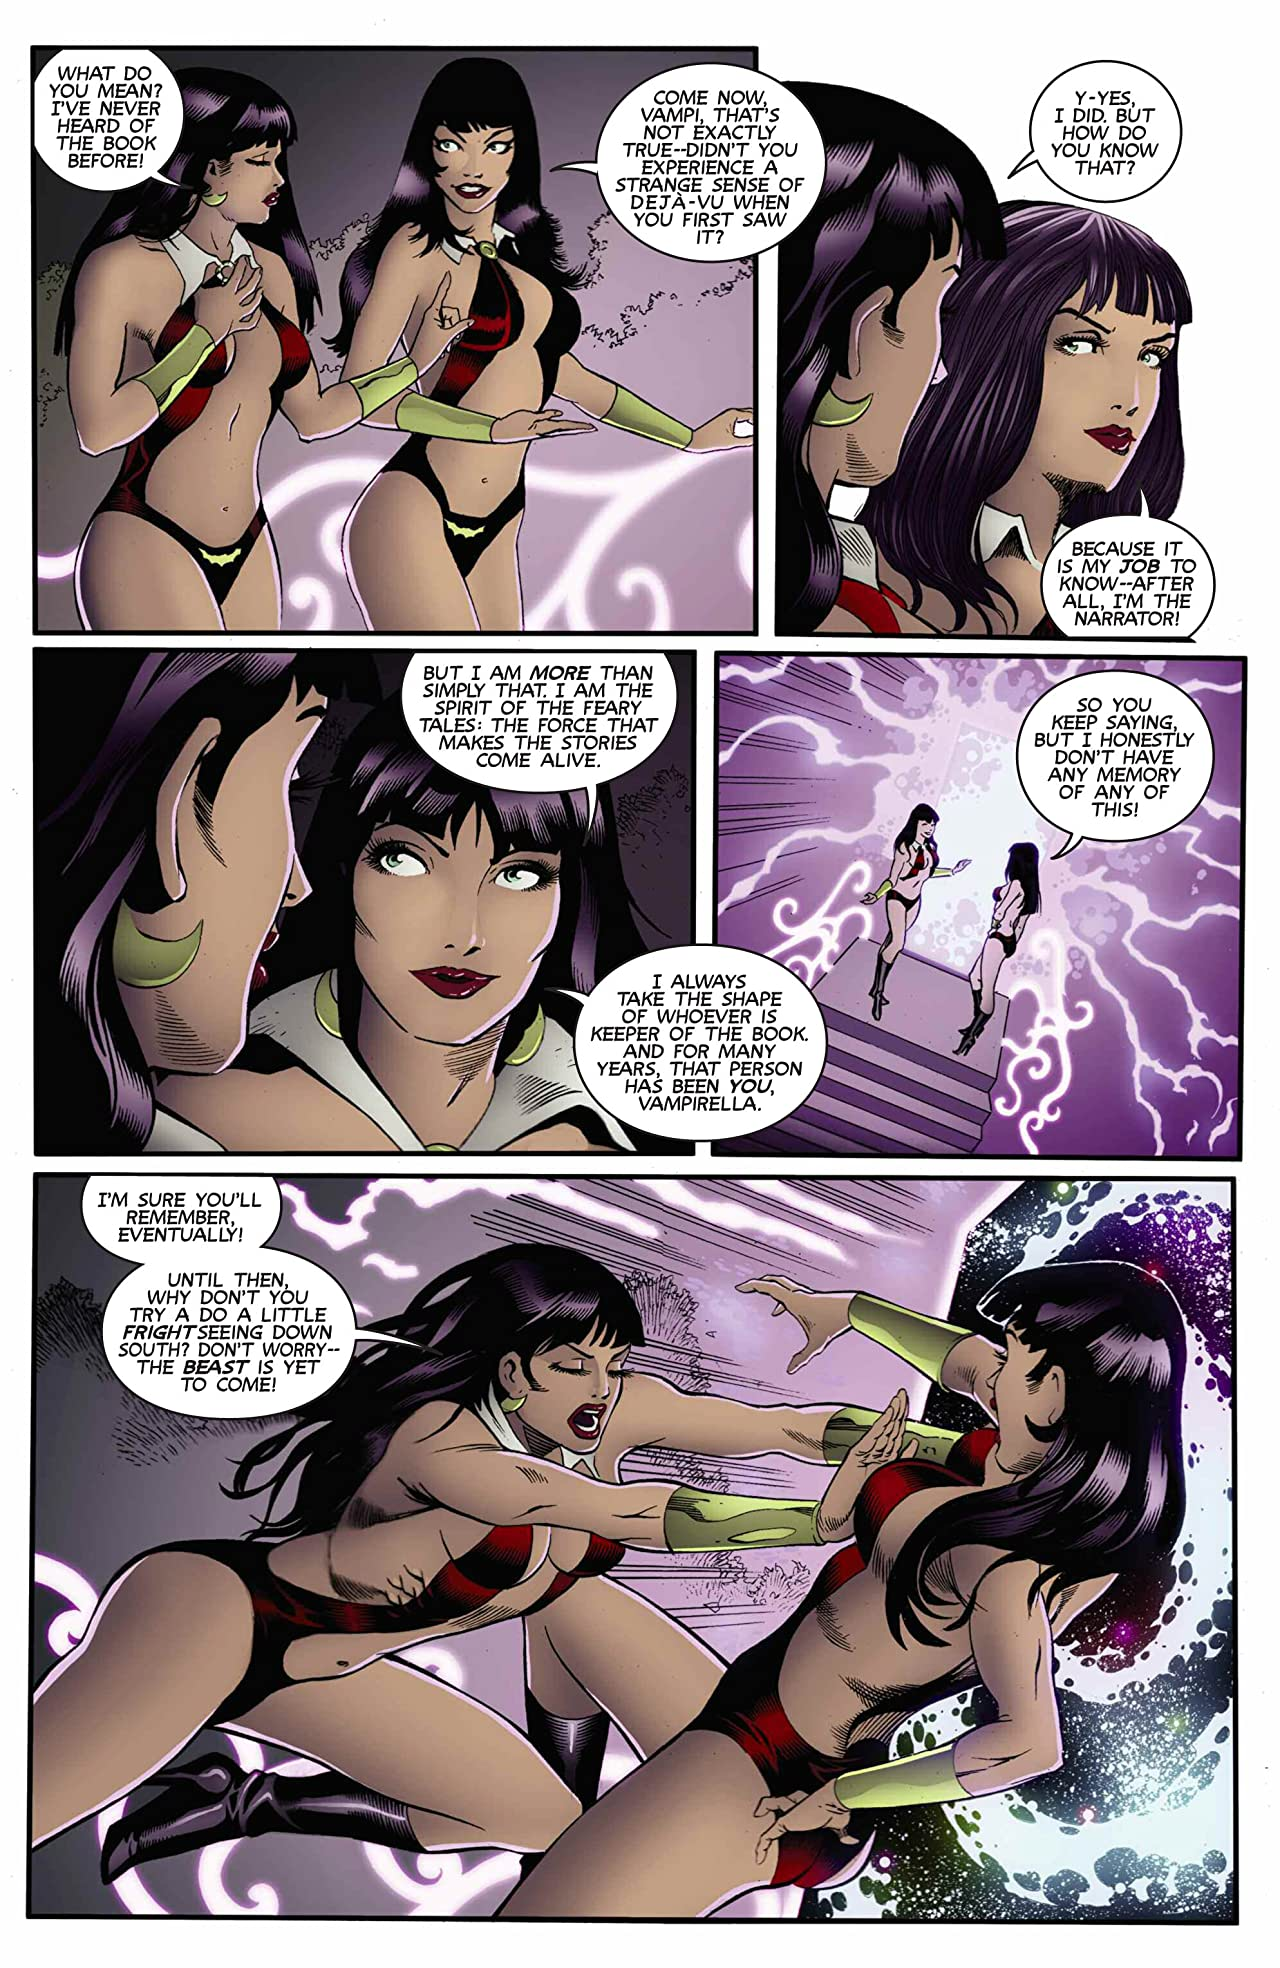 Vampirella: Feary Tales #5 (of 5): Digital Exclusive Edition